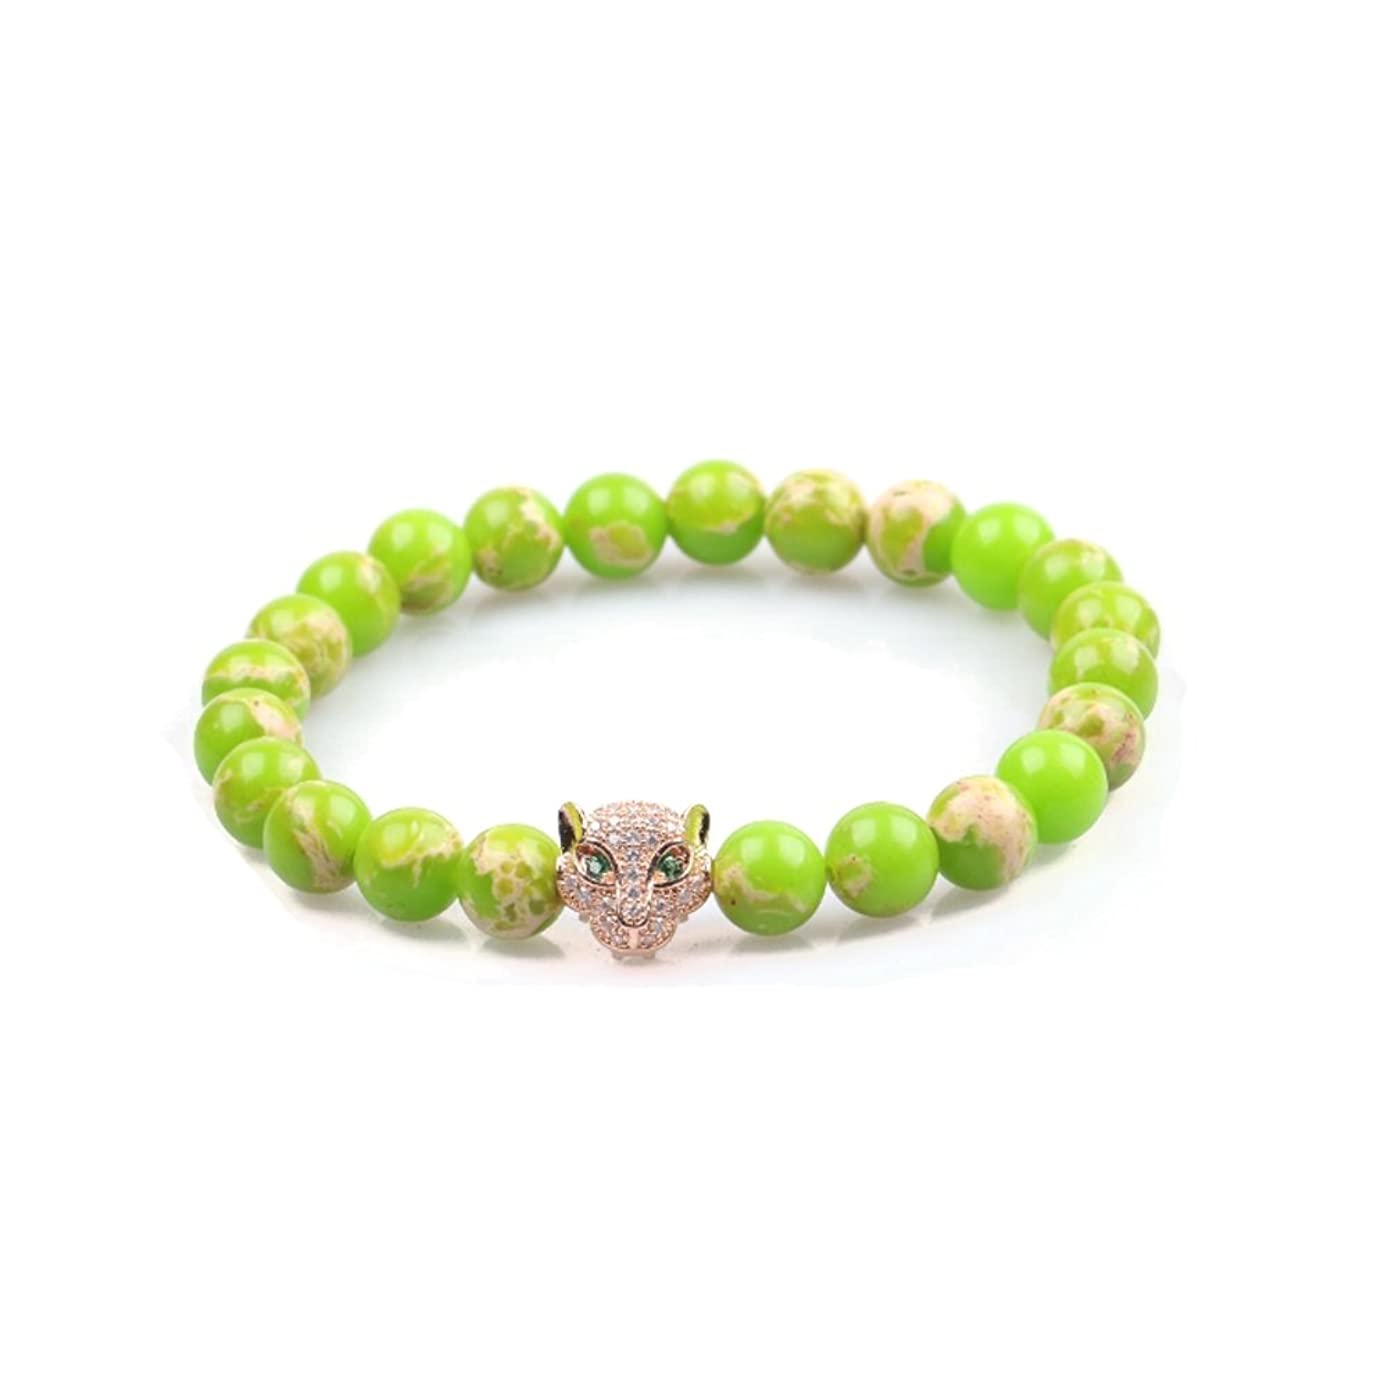 Semi-Precious Stone Beads Stretchy Elastic Bracelet with Jeweled Leopard Head Charm, 8mm, Unisex, for Friendship, Couples